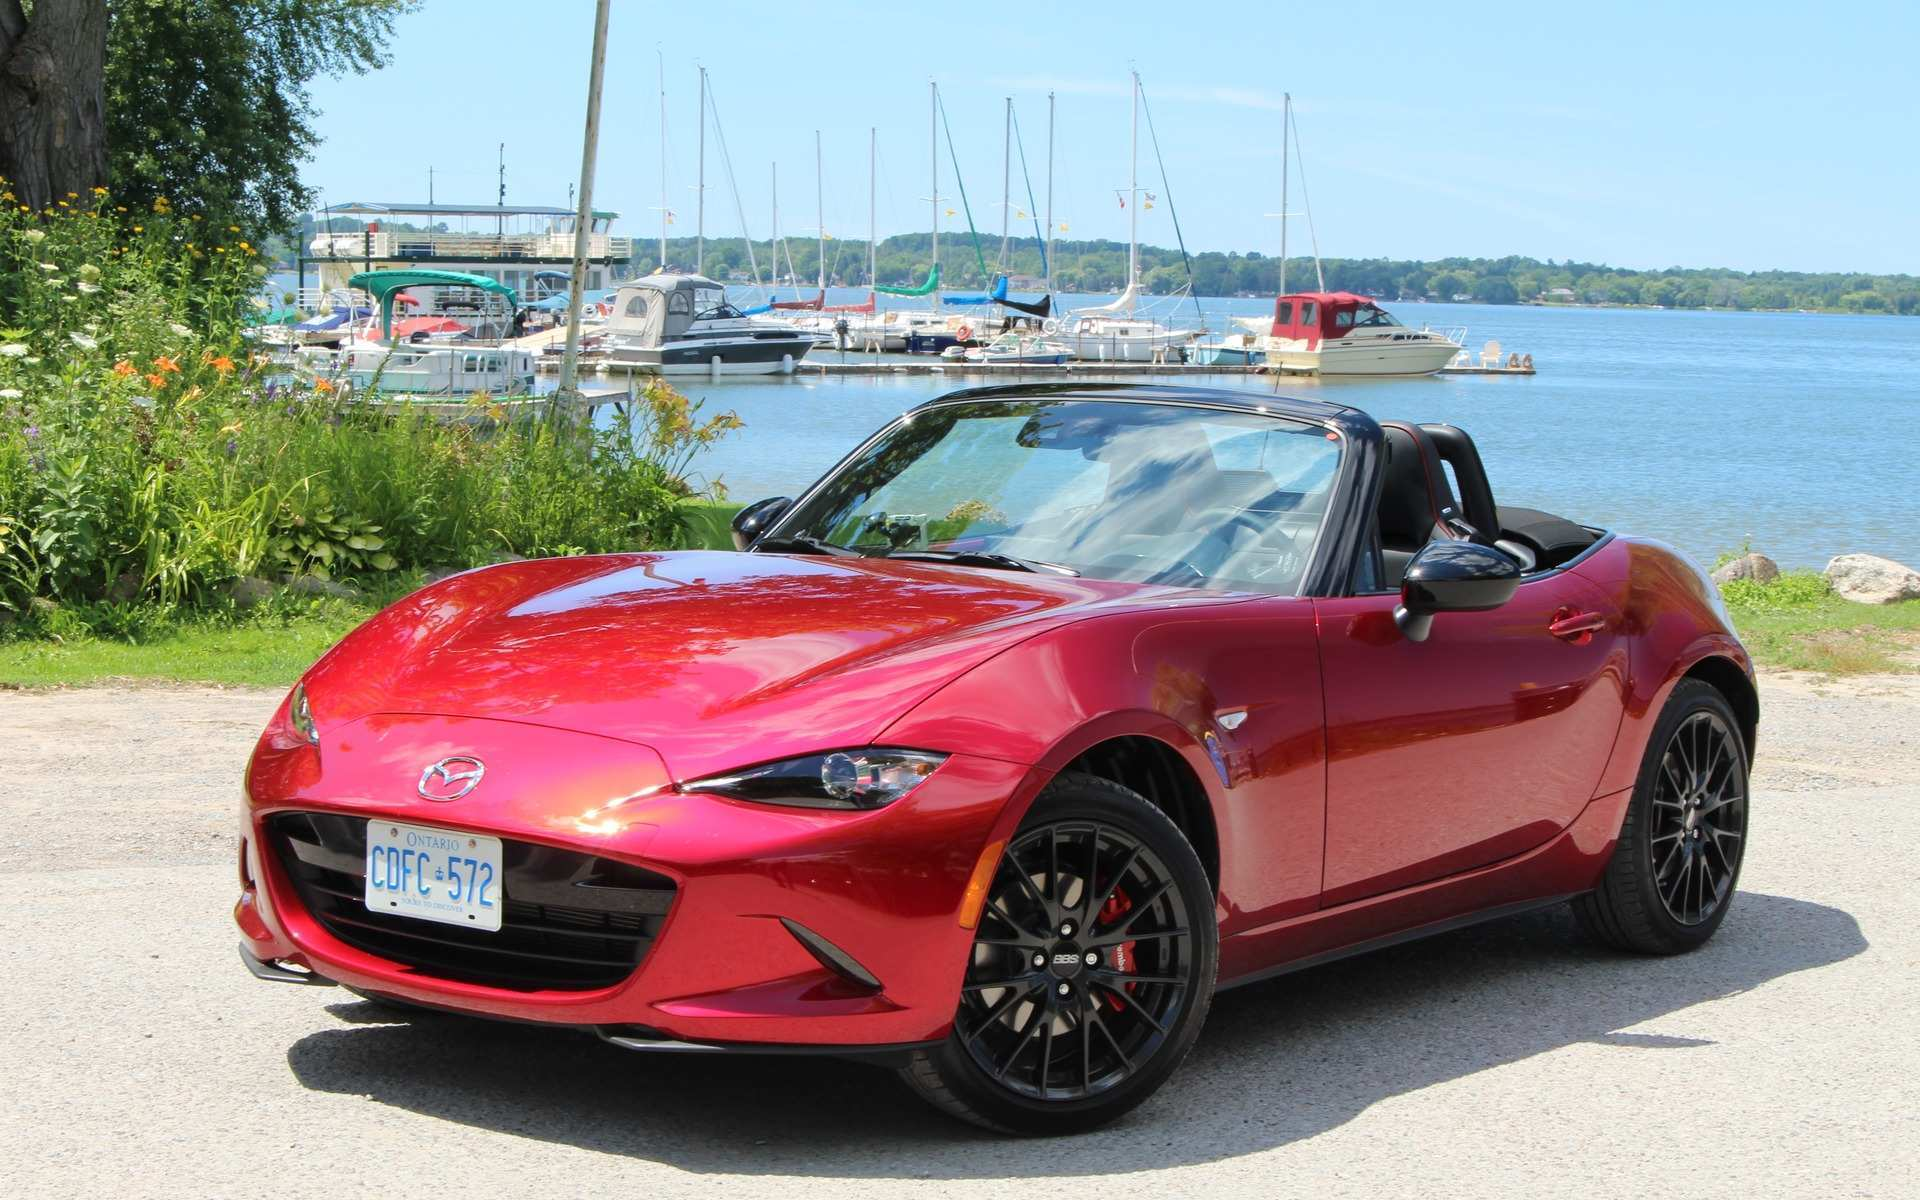 63 Great 2019 Mazda Mx 5 Gt S Reviews with 2019 Mazda Mx 5 Gt S